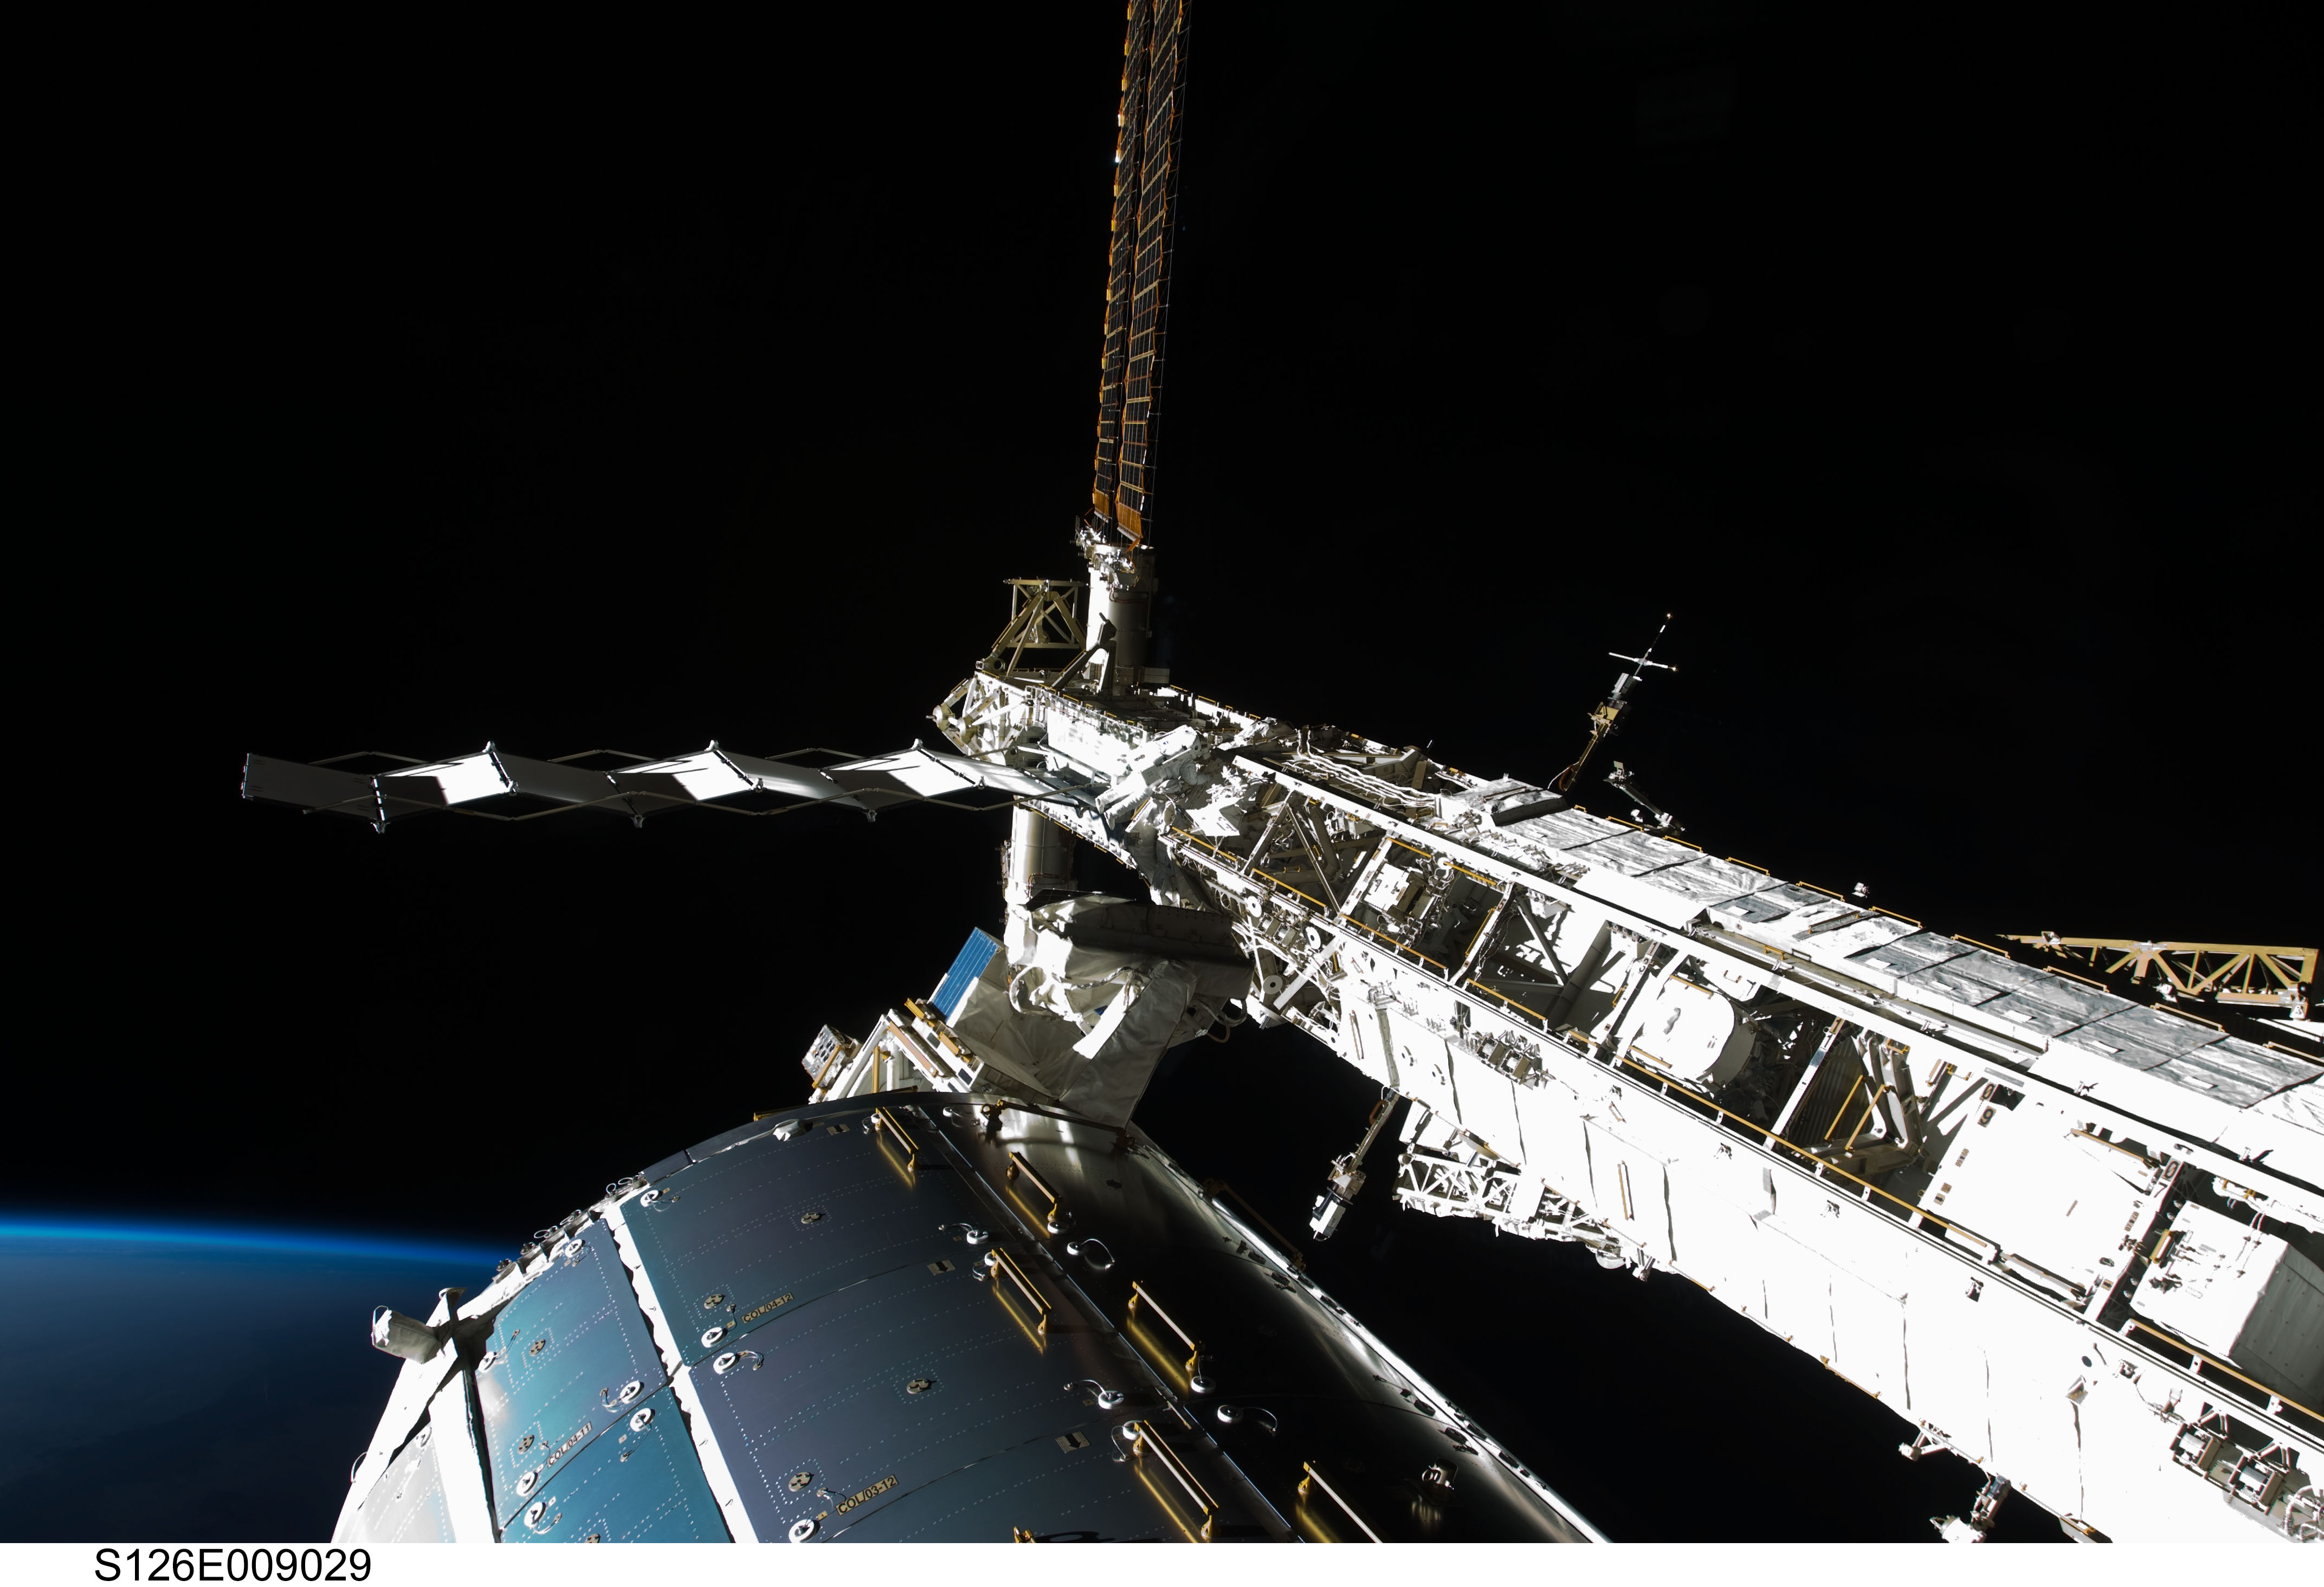 International Space Station: Find the Astronaut